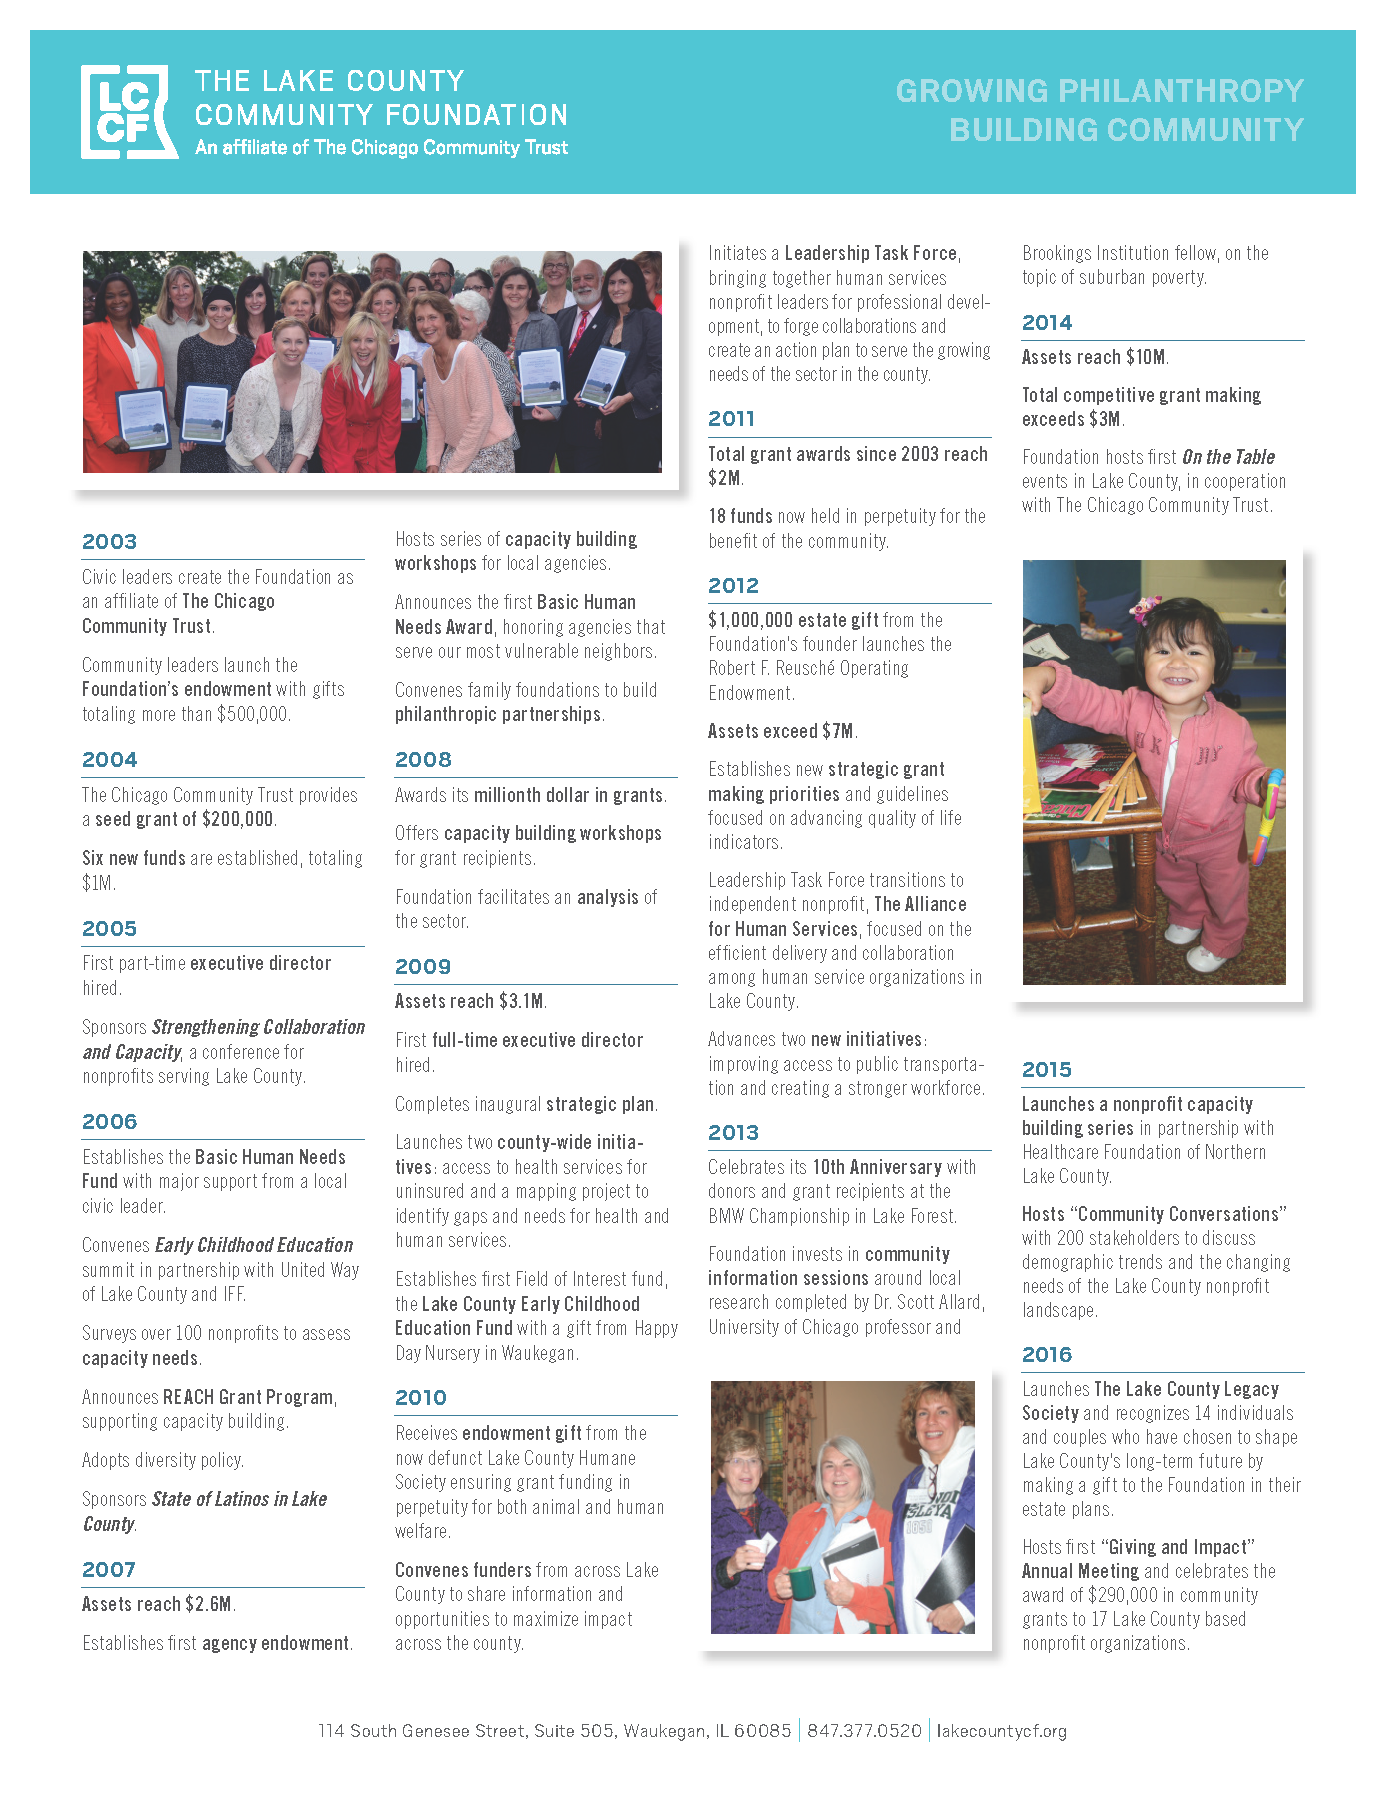 Lake County Community Foundation History from 2003 to 2016